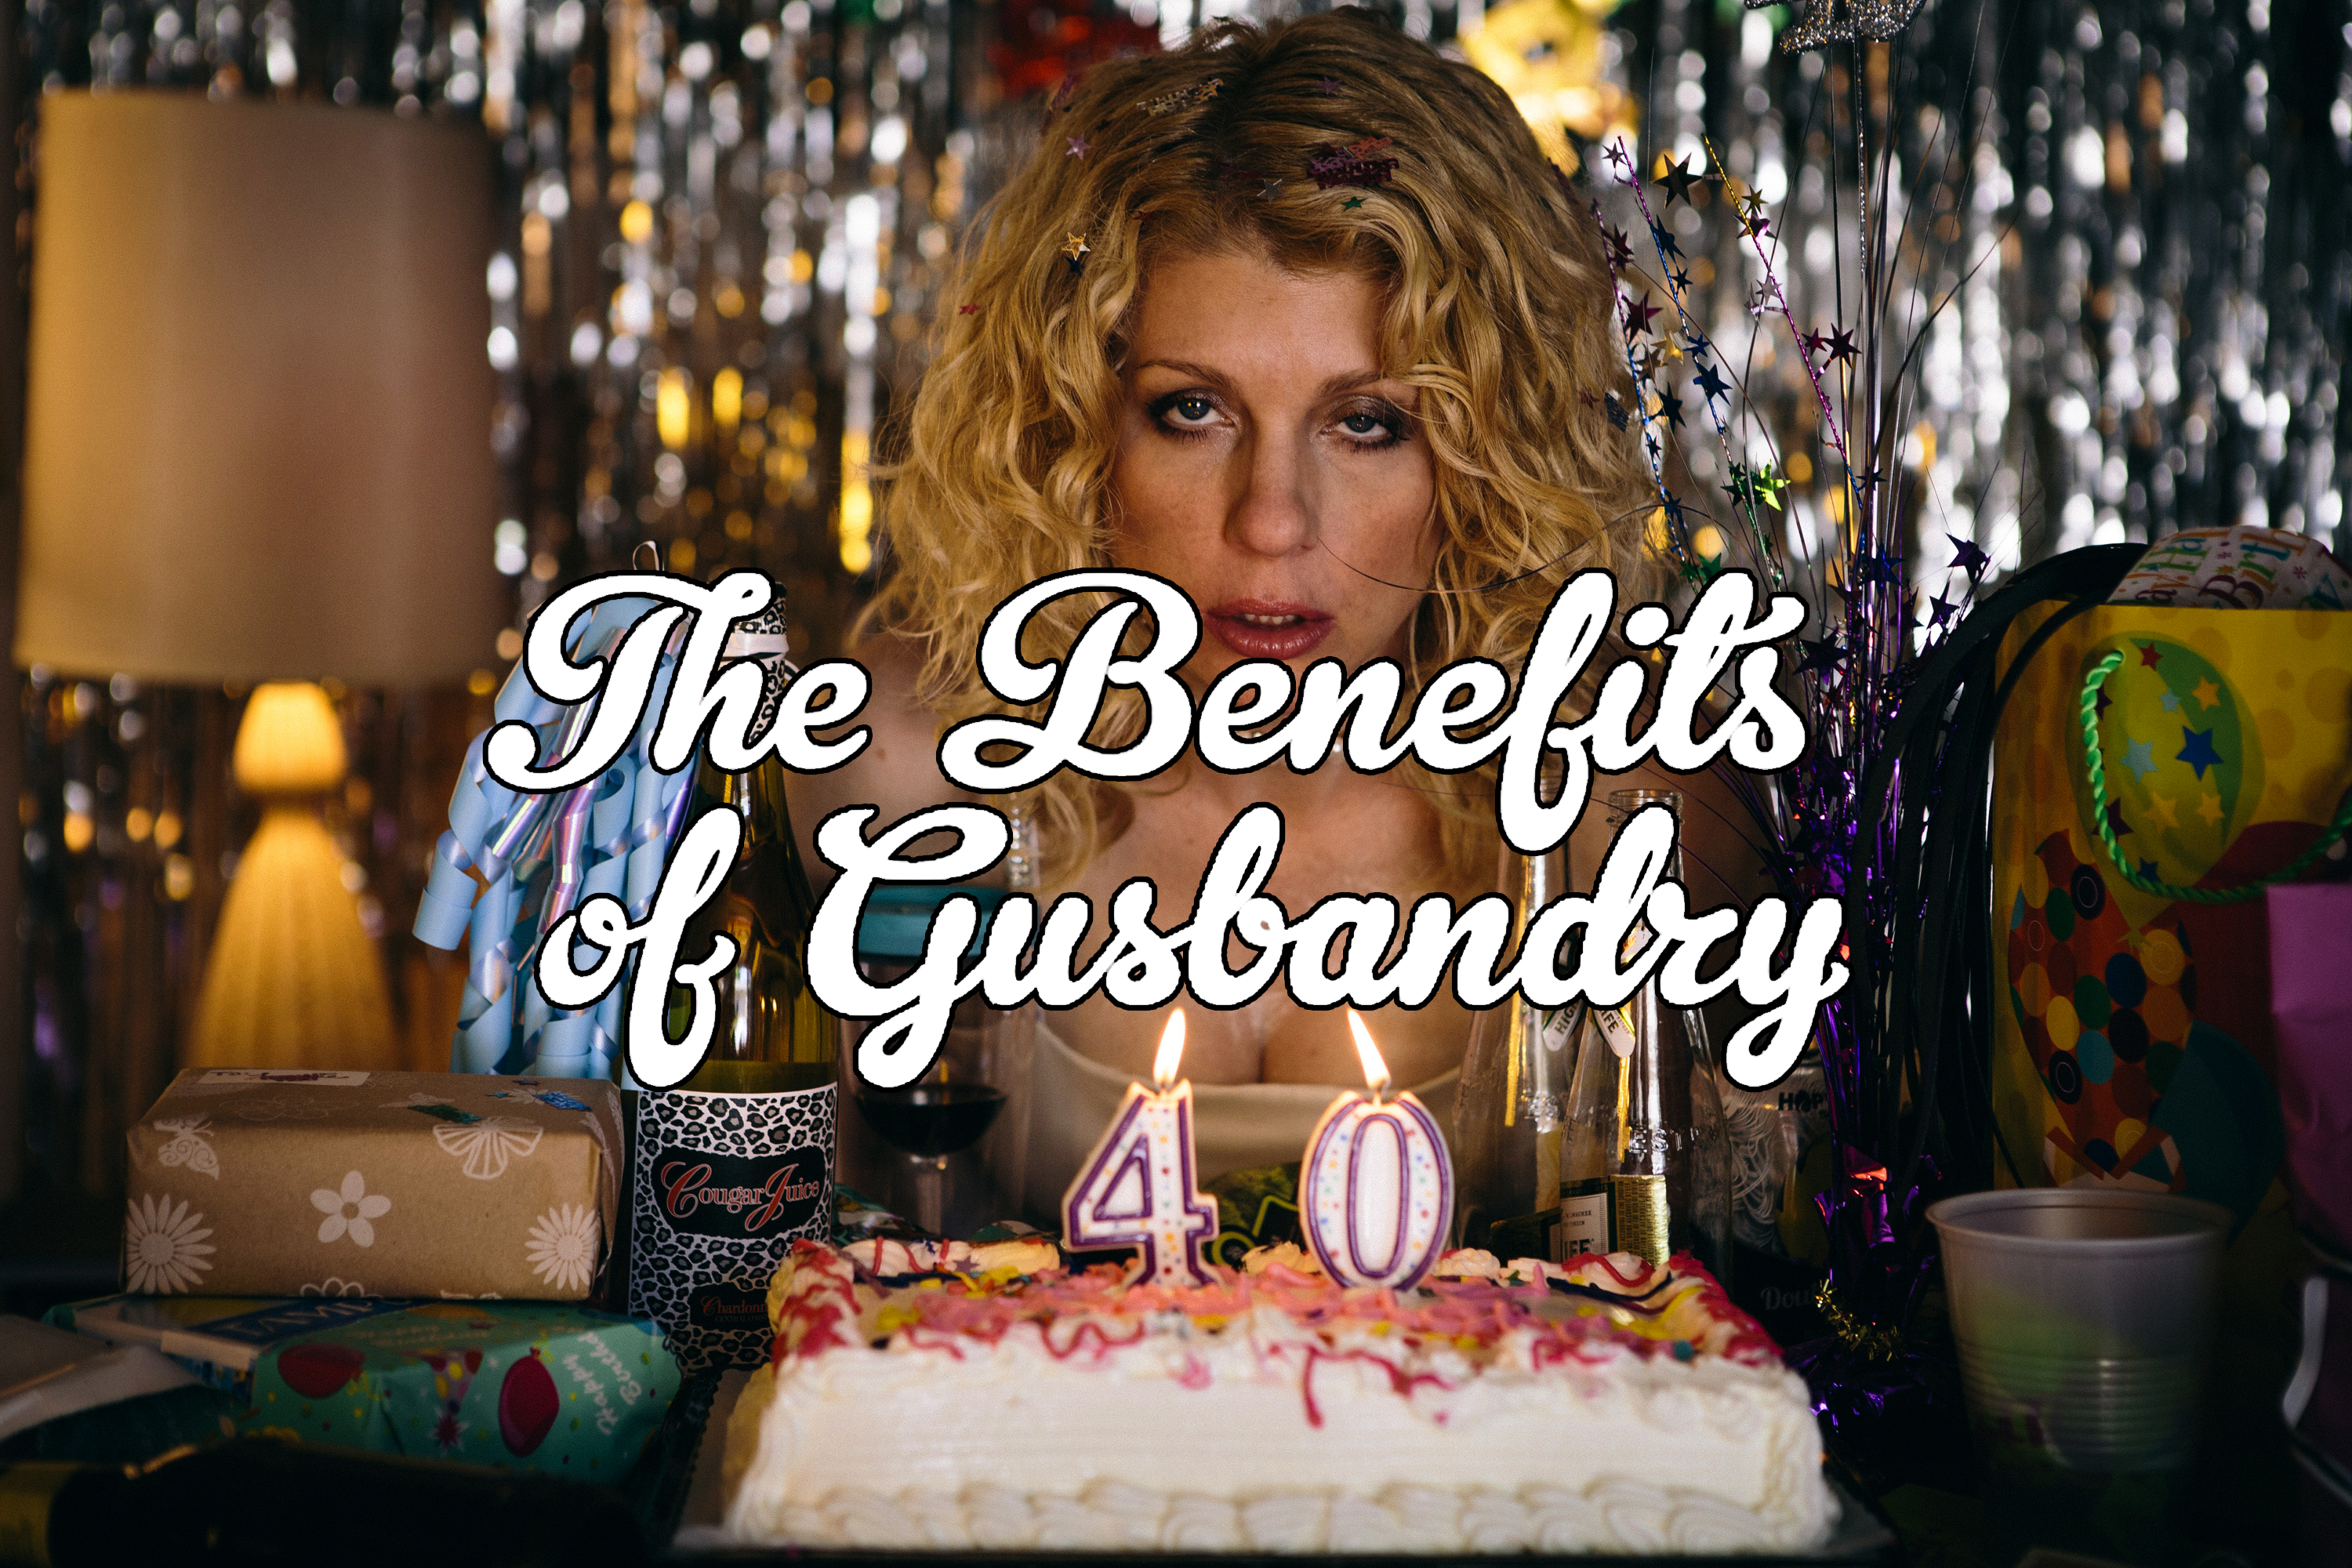 The Benefits of Gusbandry